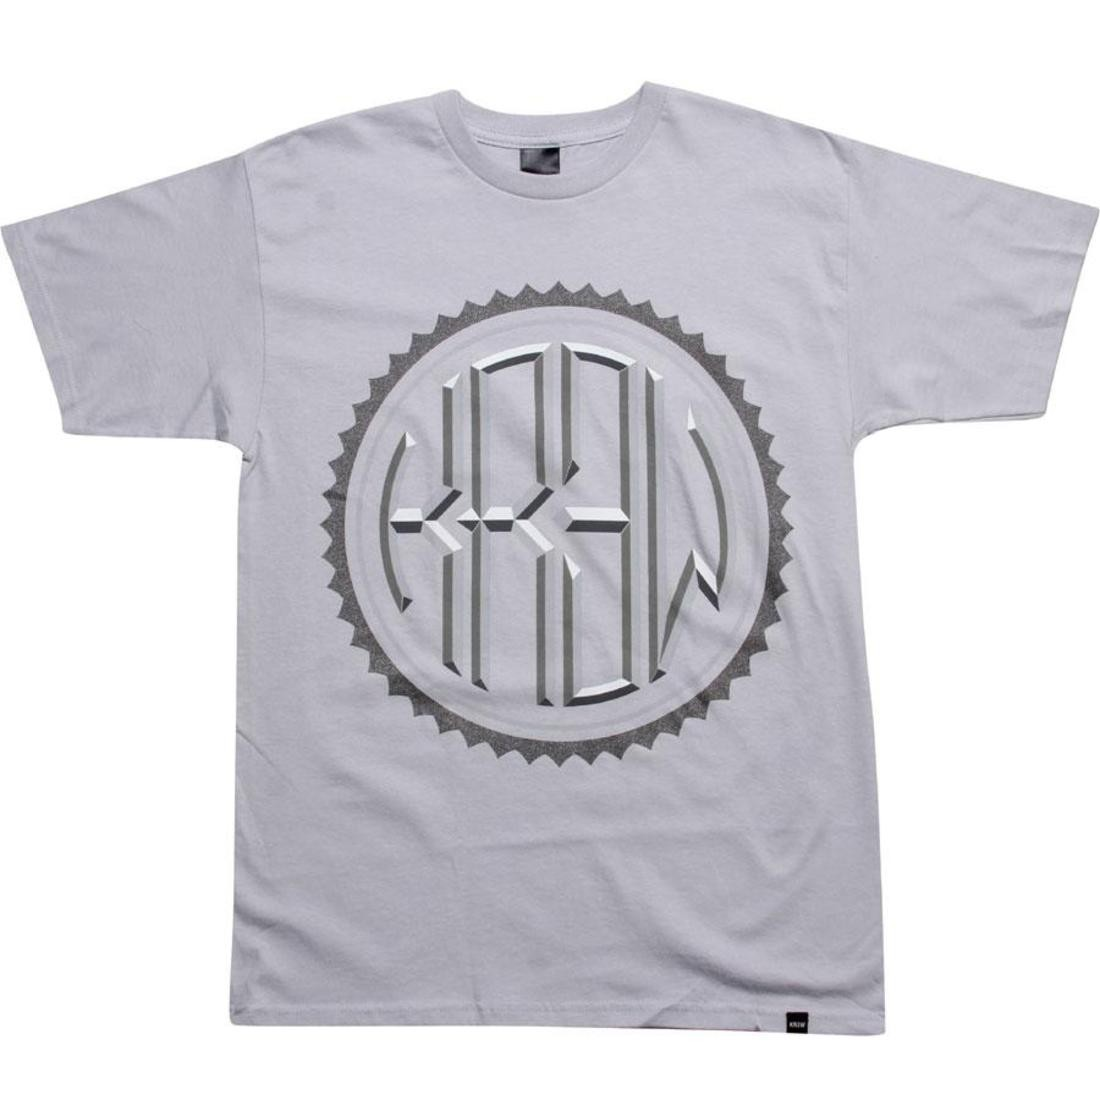 Tシャツ 【 KR3W ROUNDER TEE SILVER 】 メンズファッション トップス カットソー 送料無料